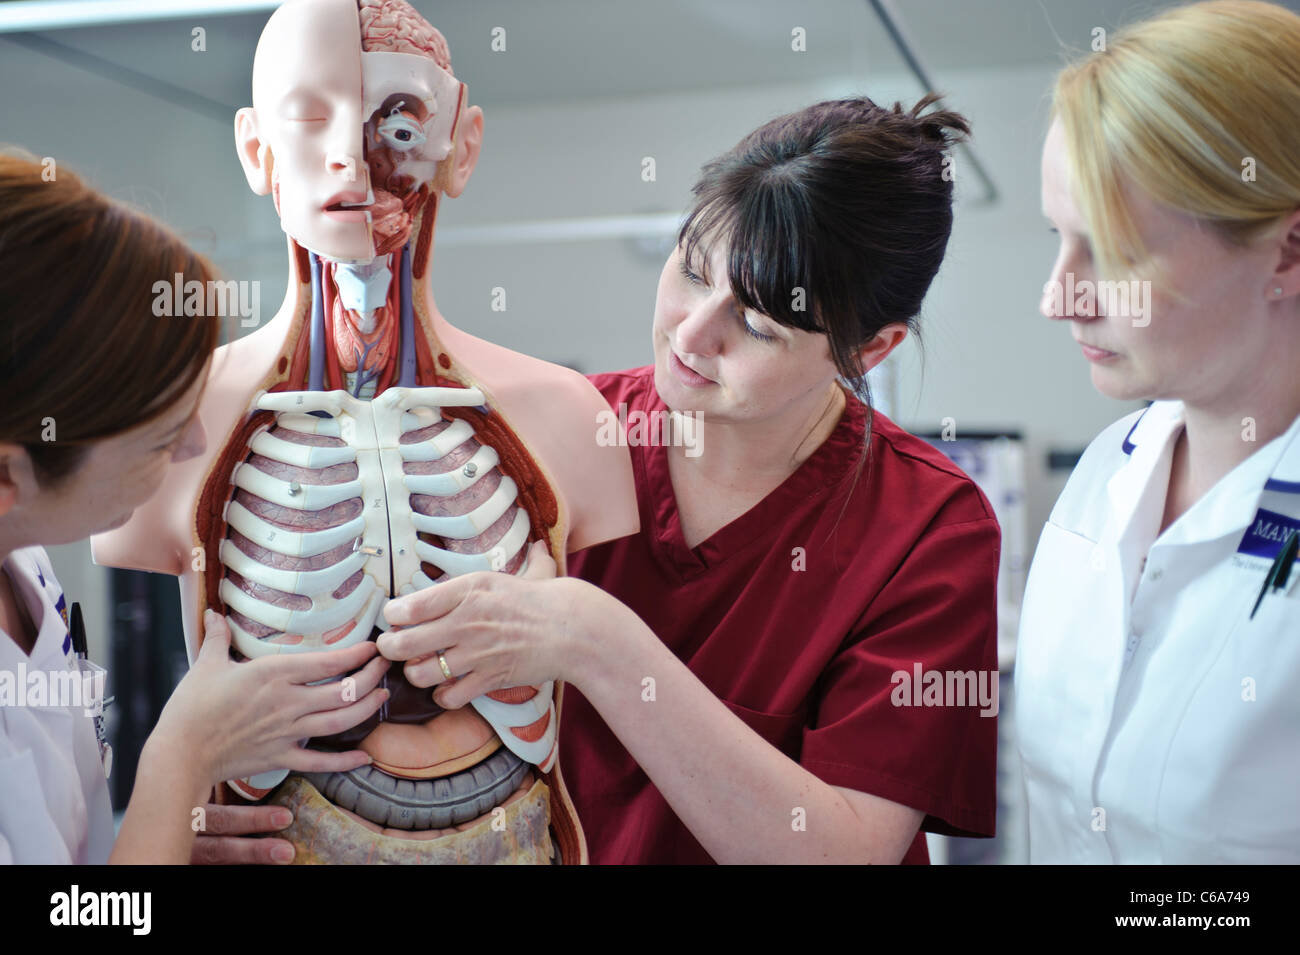 Female White Student Nurses And Teacher Interacting With Human Stock